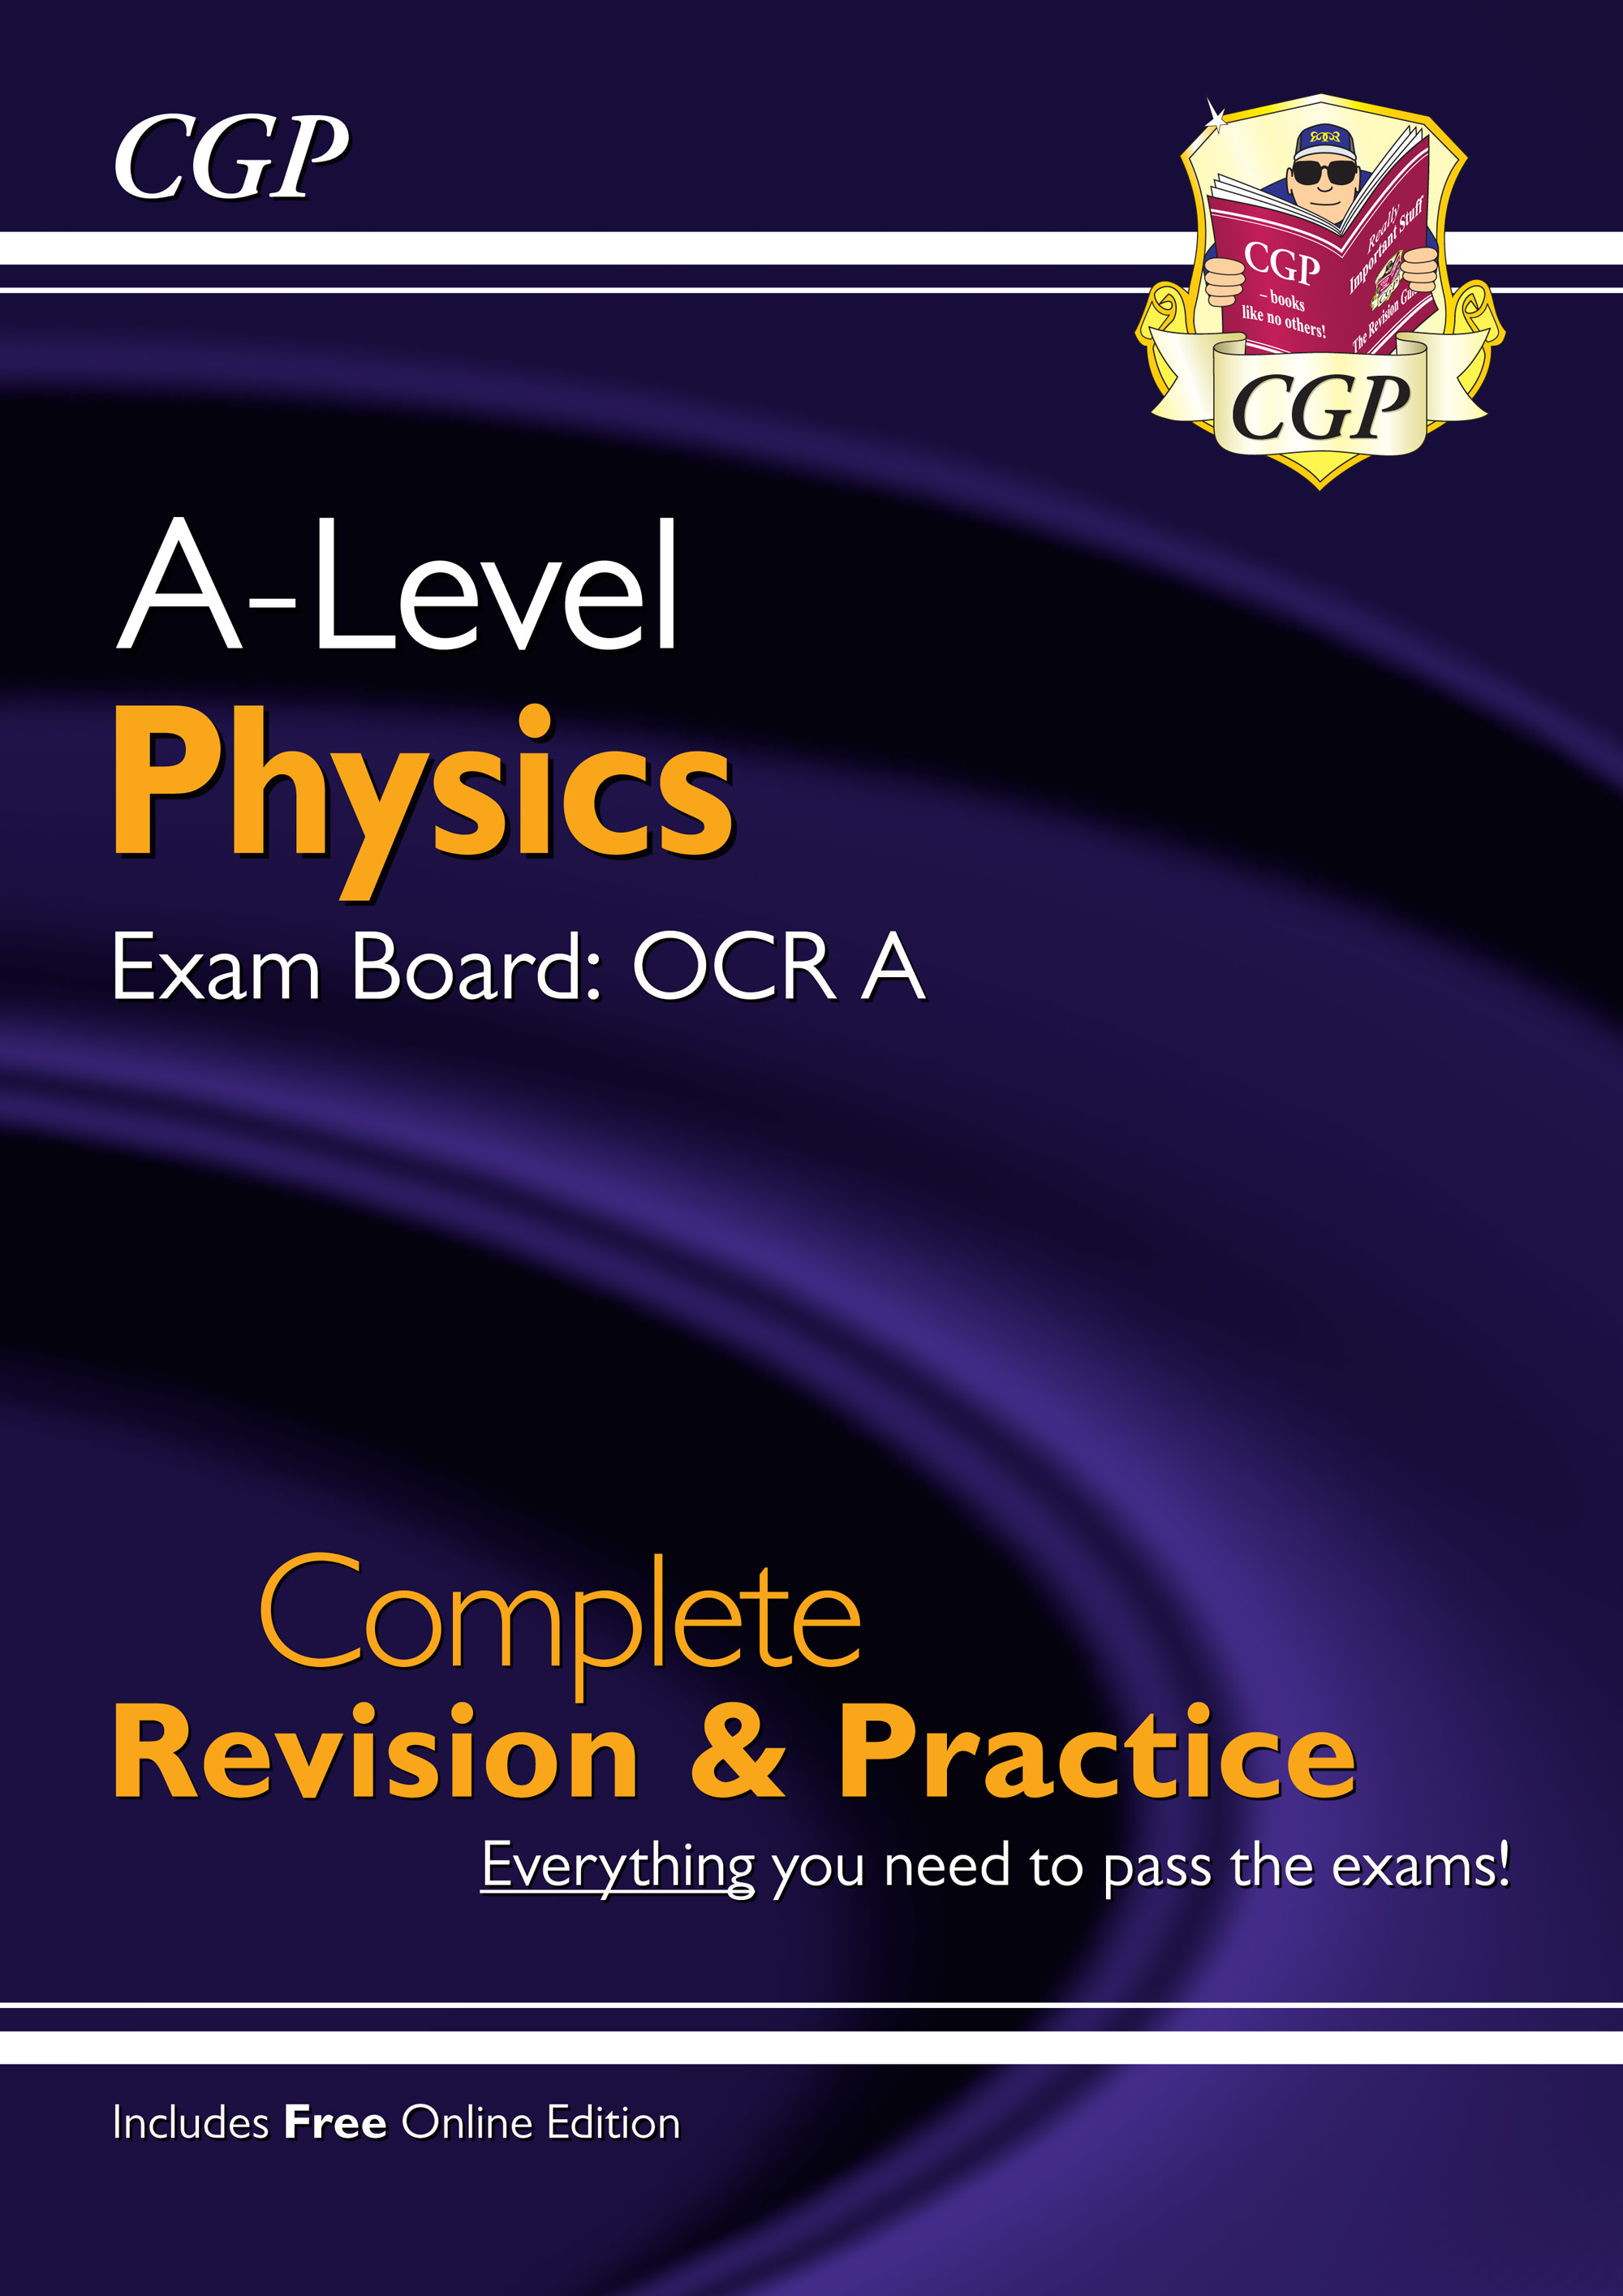 PRAR73 - New A-Level Physics: OCR A Year 1 & 2 Complete Revision & Practice with Online Edition